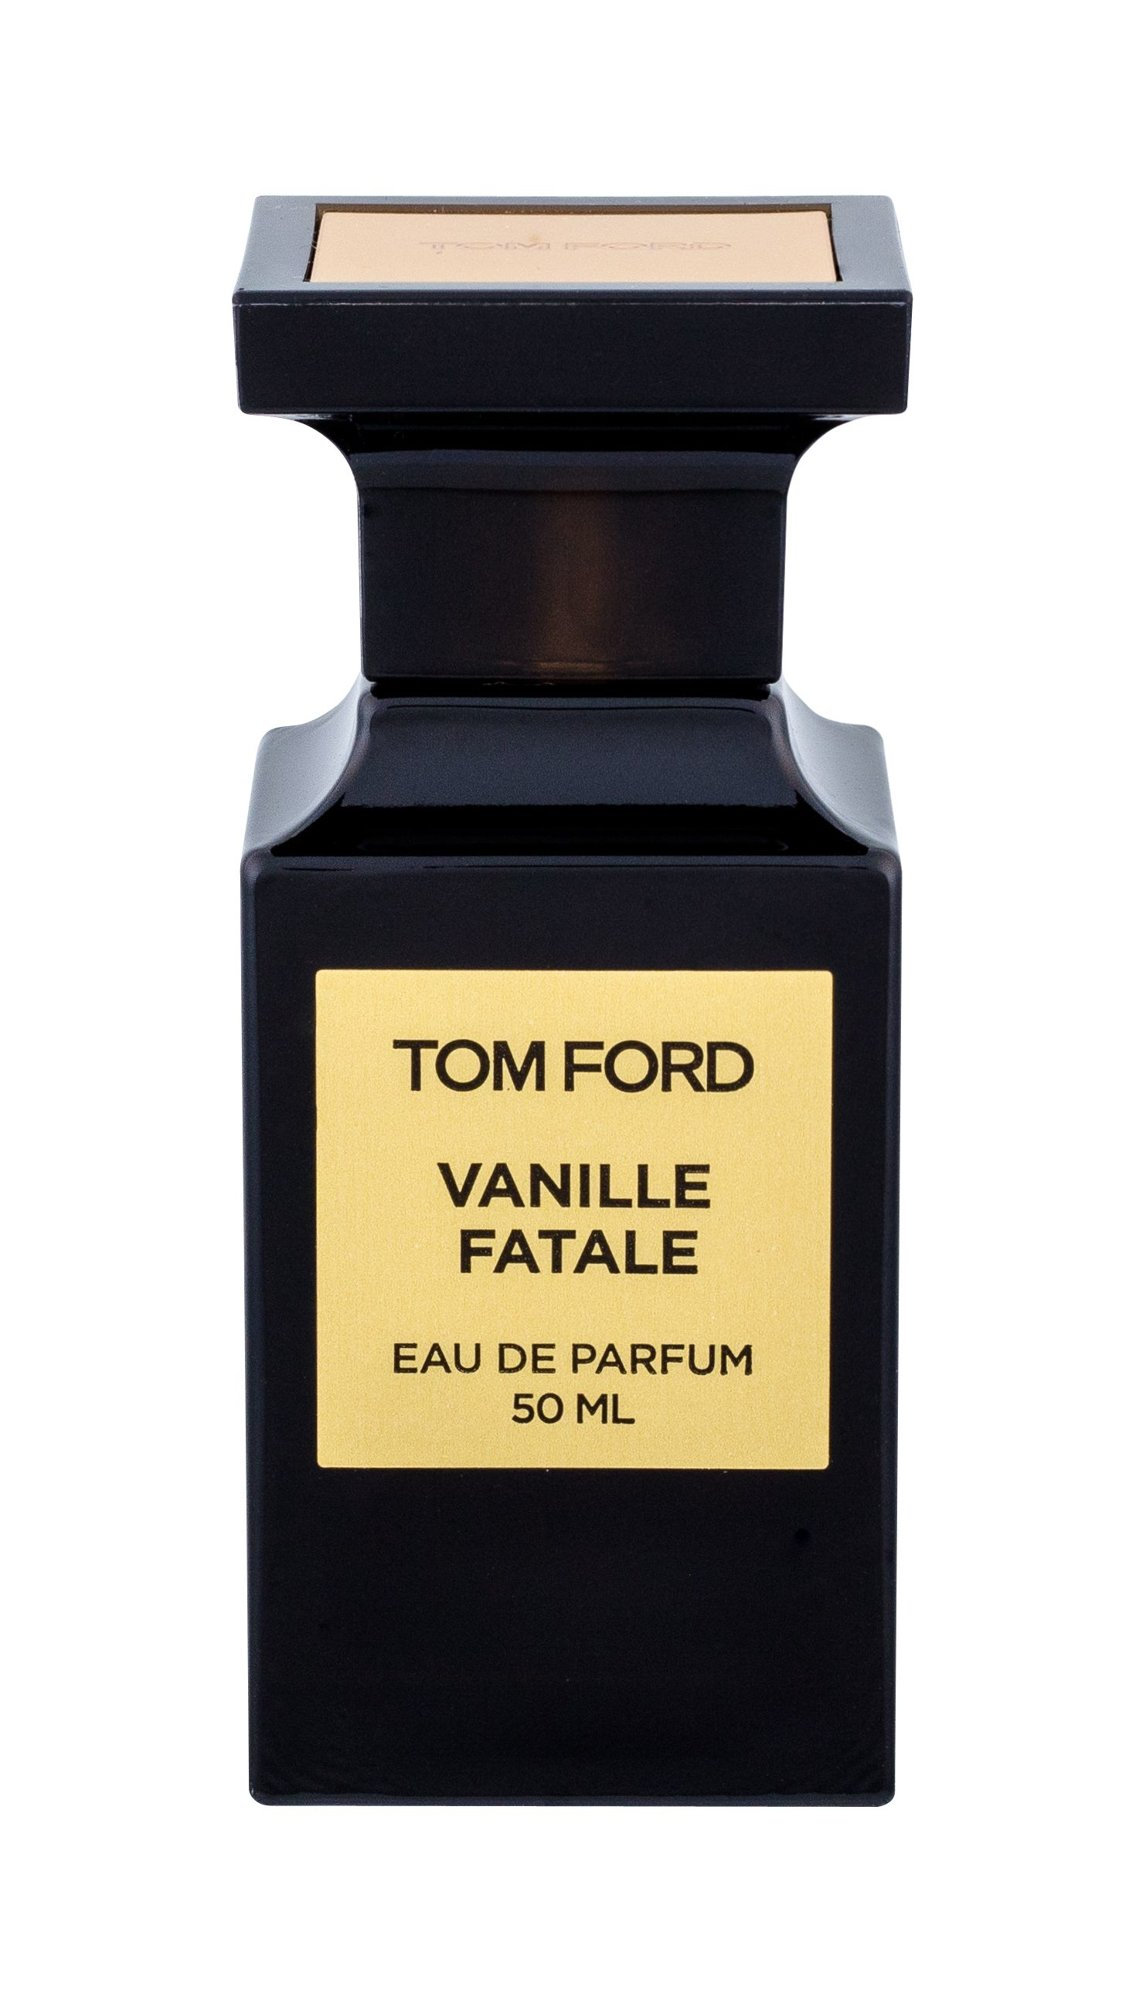 TOM FORD Vanille Fatale Eau de Parfum 50ml